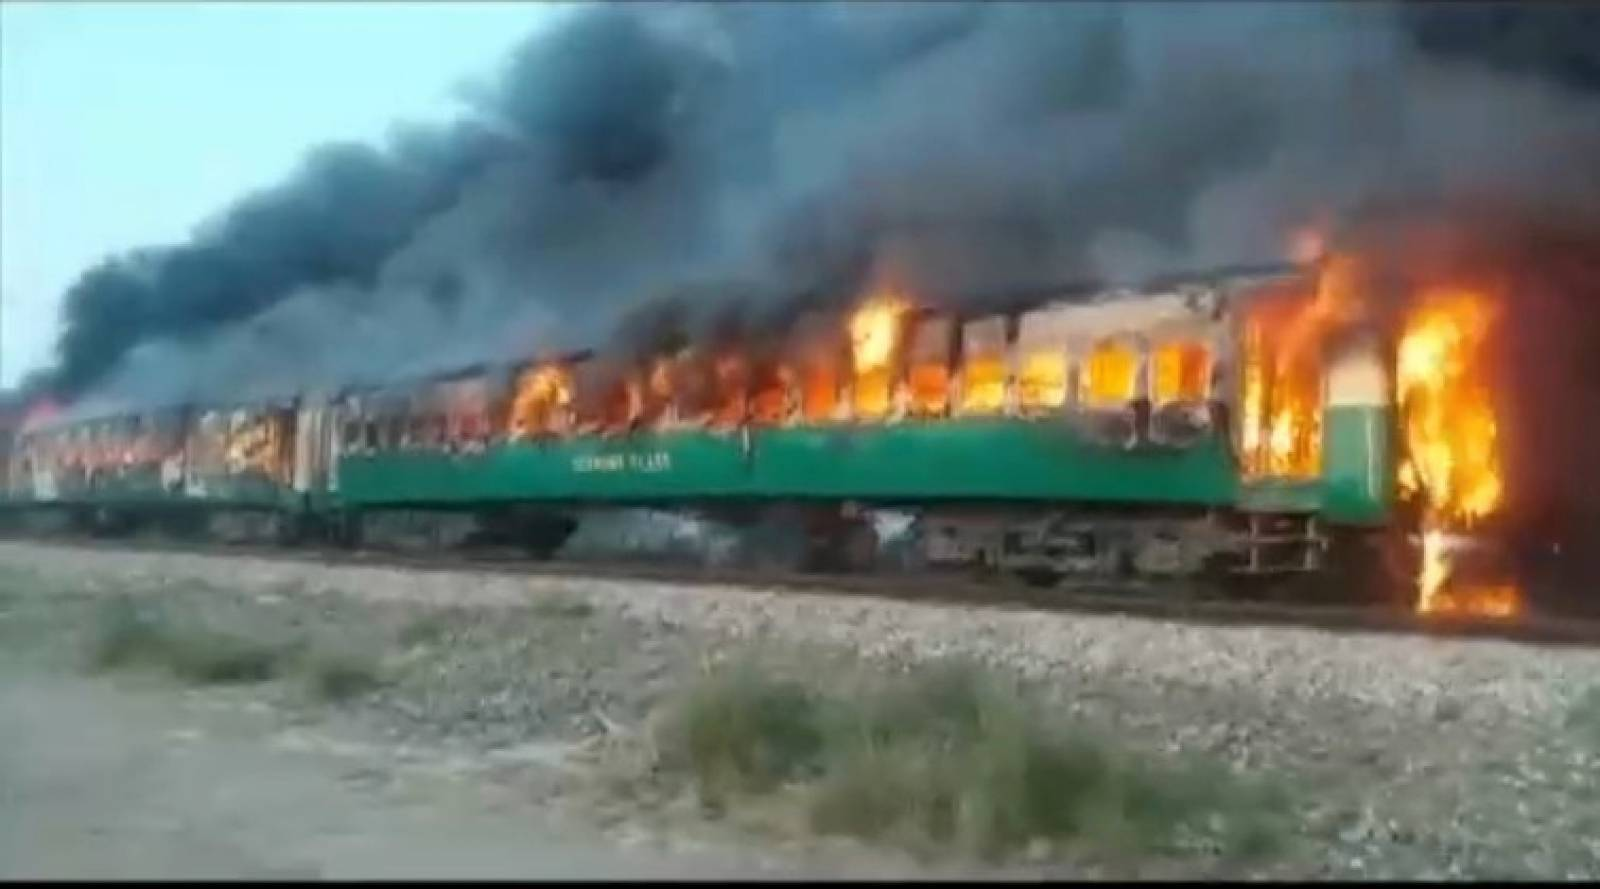 Video grab of a fire burning in a train carriage after a gas canister passengers were using to cook breakfast exploded, near the town of Rahim Yar Khan